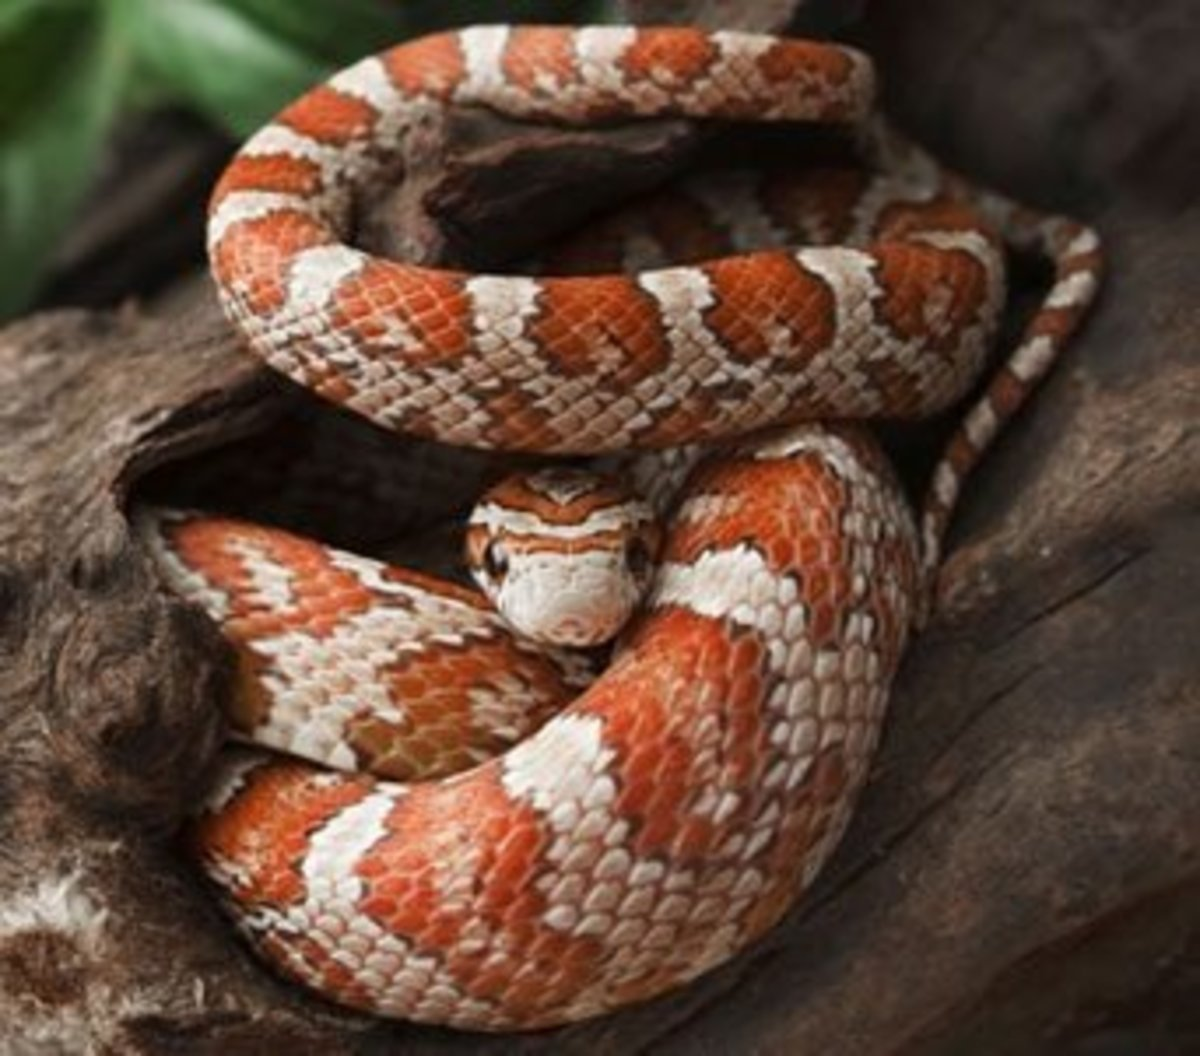 Best Pet Snake Species for Children and Beginners